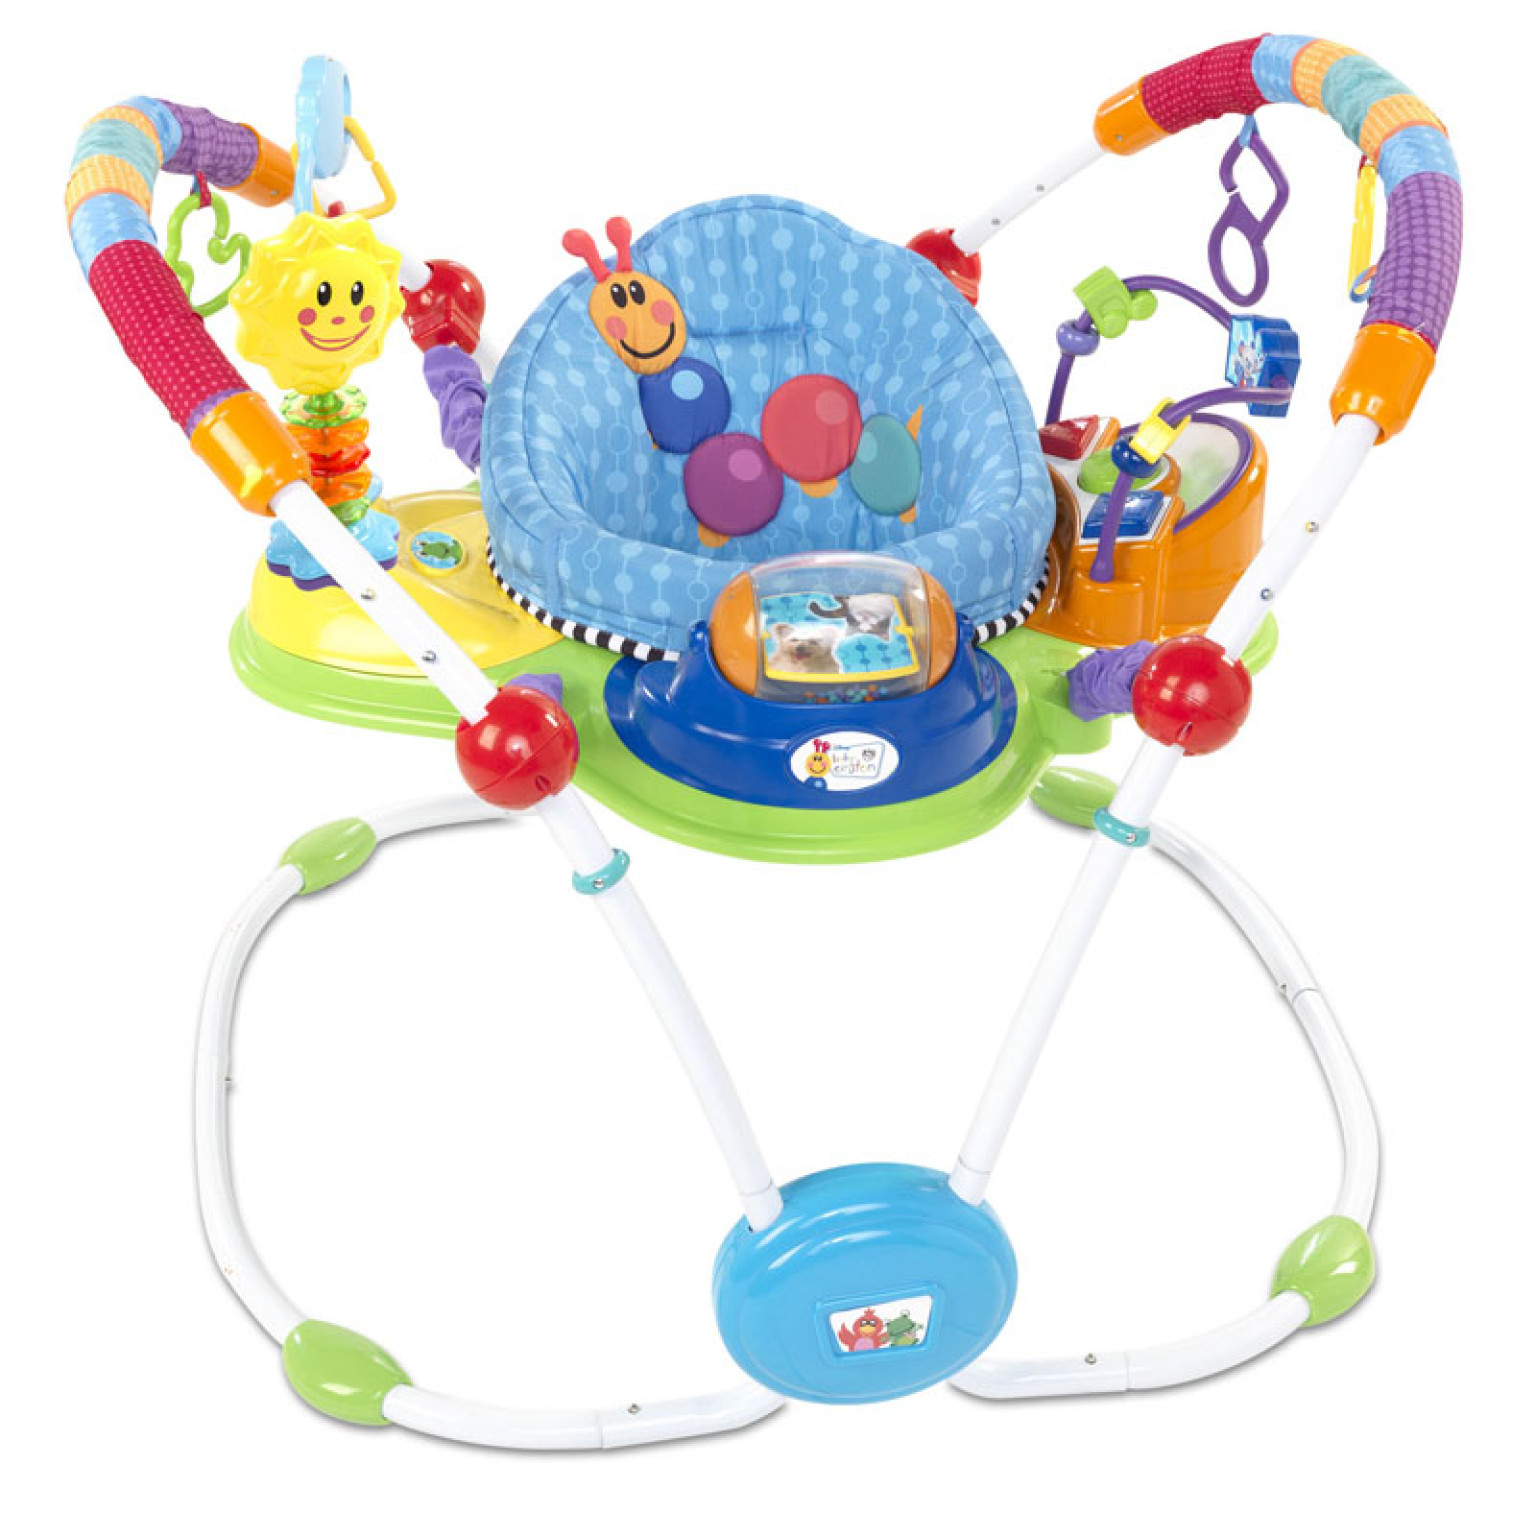 Baby Einstein Musical Motion Activity Jumpers Recall 400 000 Units Pulled Due To Impact Hazard